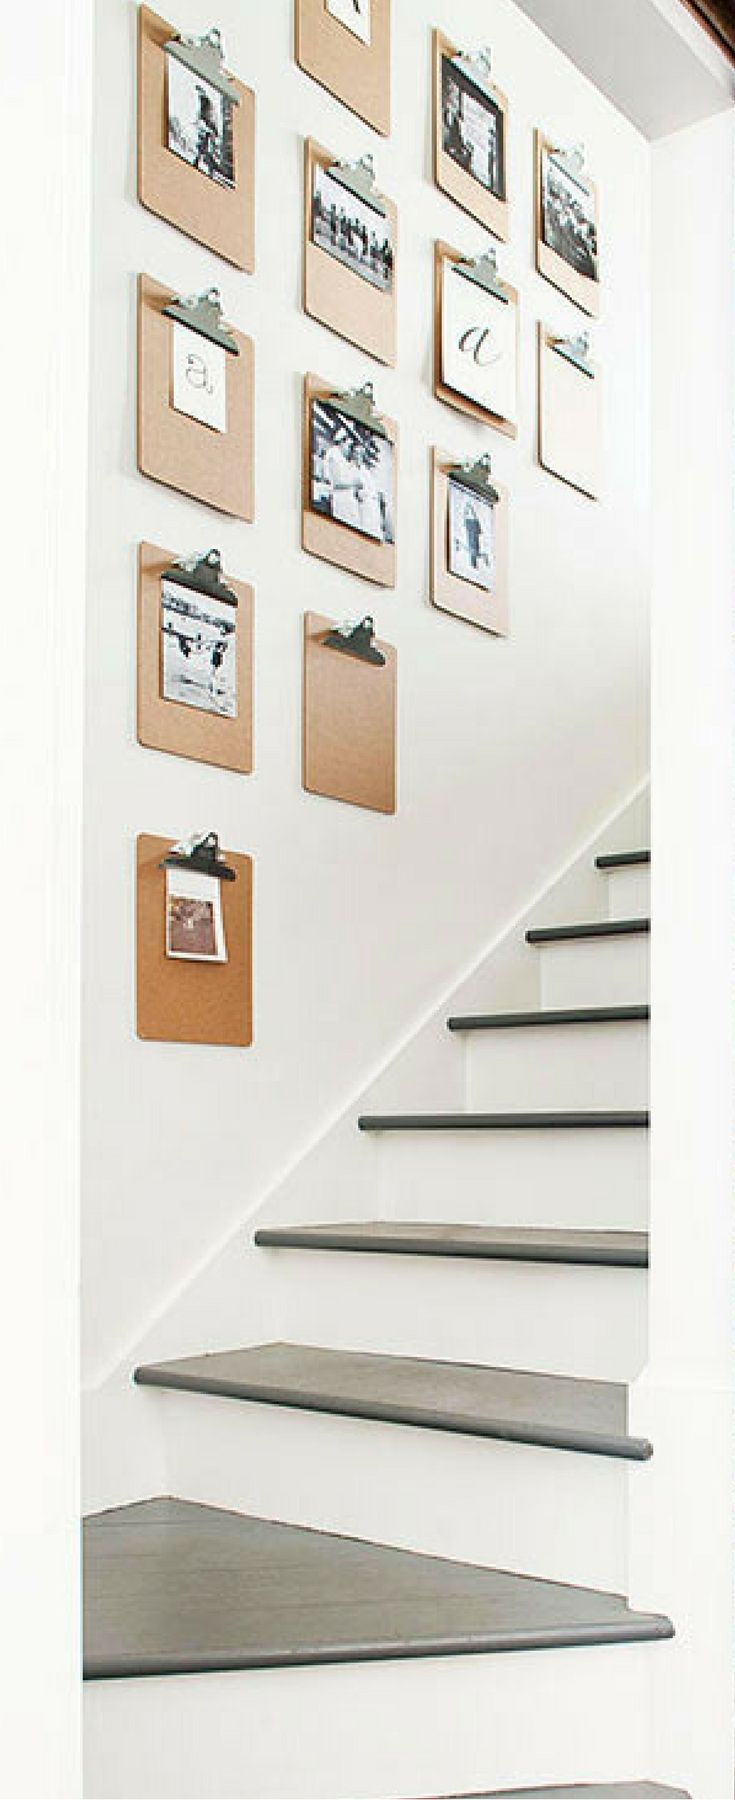 Hang clipboards on the wall for an easy photo gallery. You can switch out new photos whenever you want, display your kids' artwork, and more! Love this DIY home decor idea.